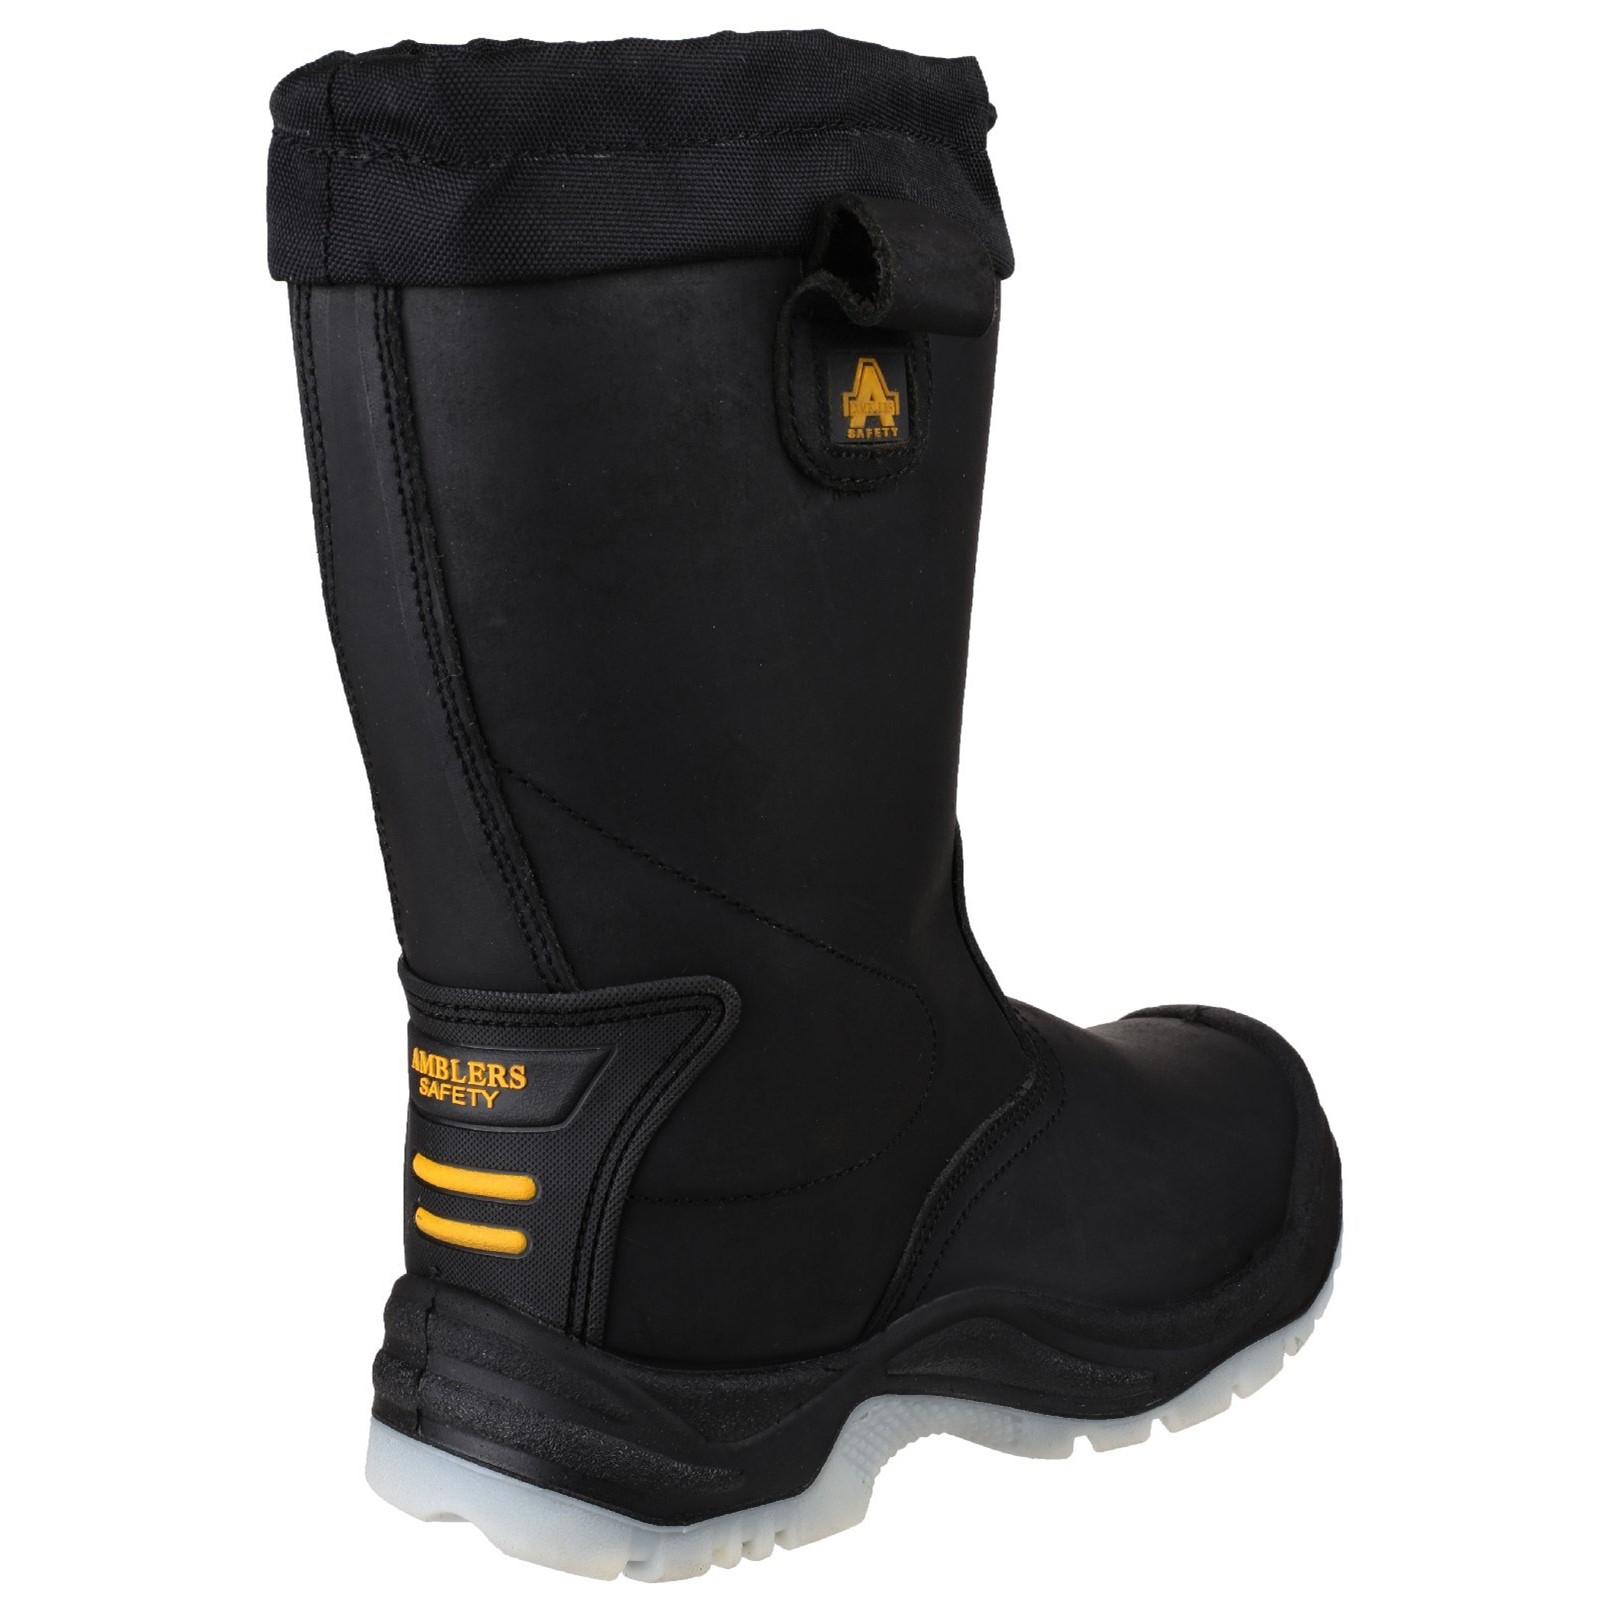 73b801a990c Details about Amblers Safety Mens FS209 Water Resistant Pull On Safety  Rigger Boot